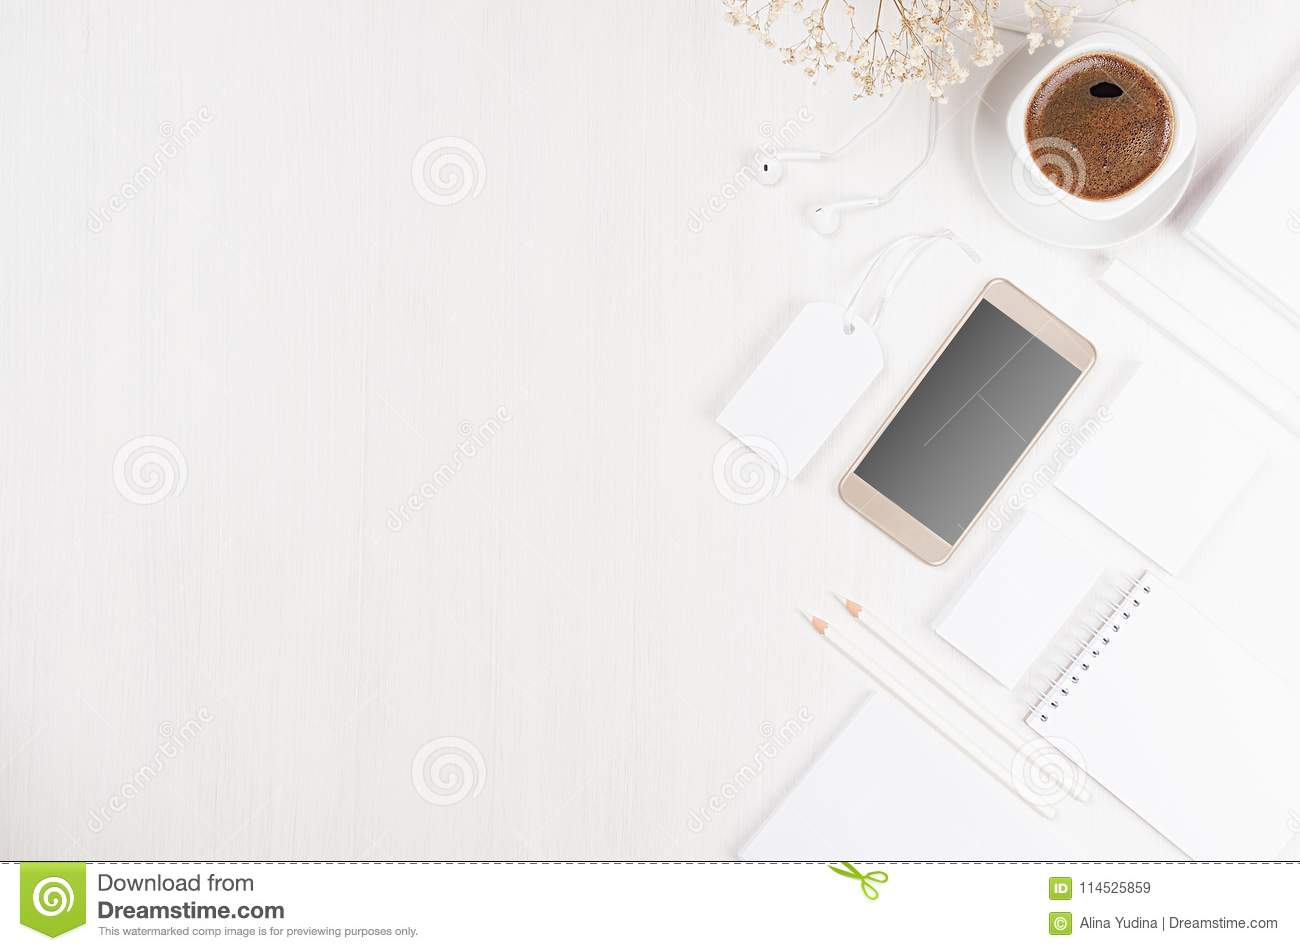 Modern stylish working place with blank white stationery, copy space, phone, coffee, flowers on soft white wood board.